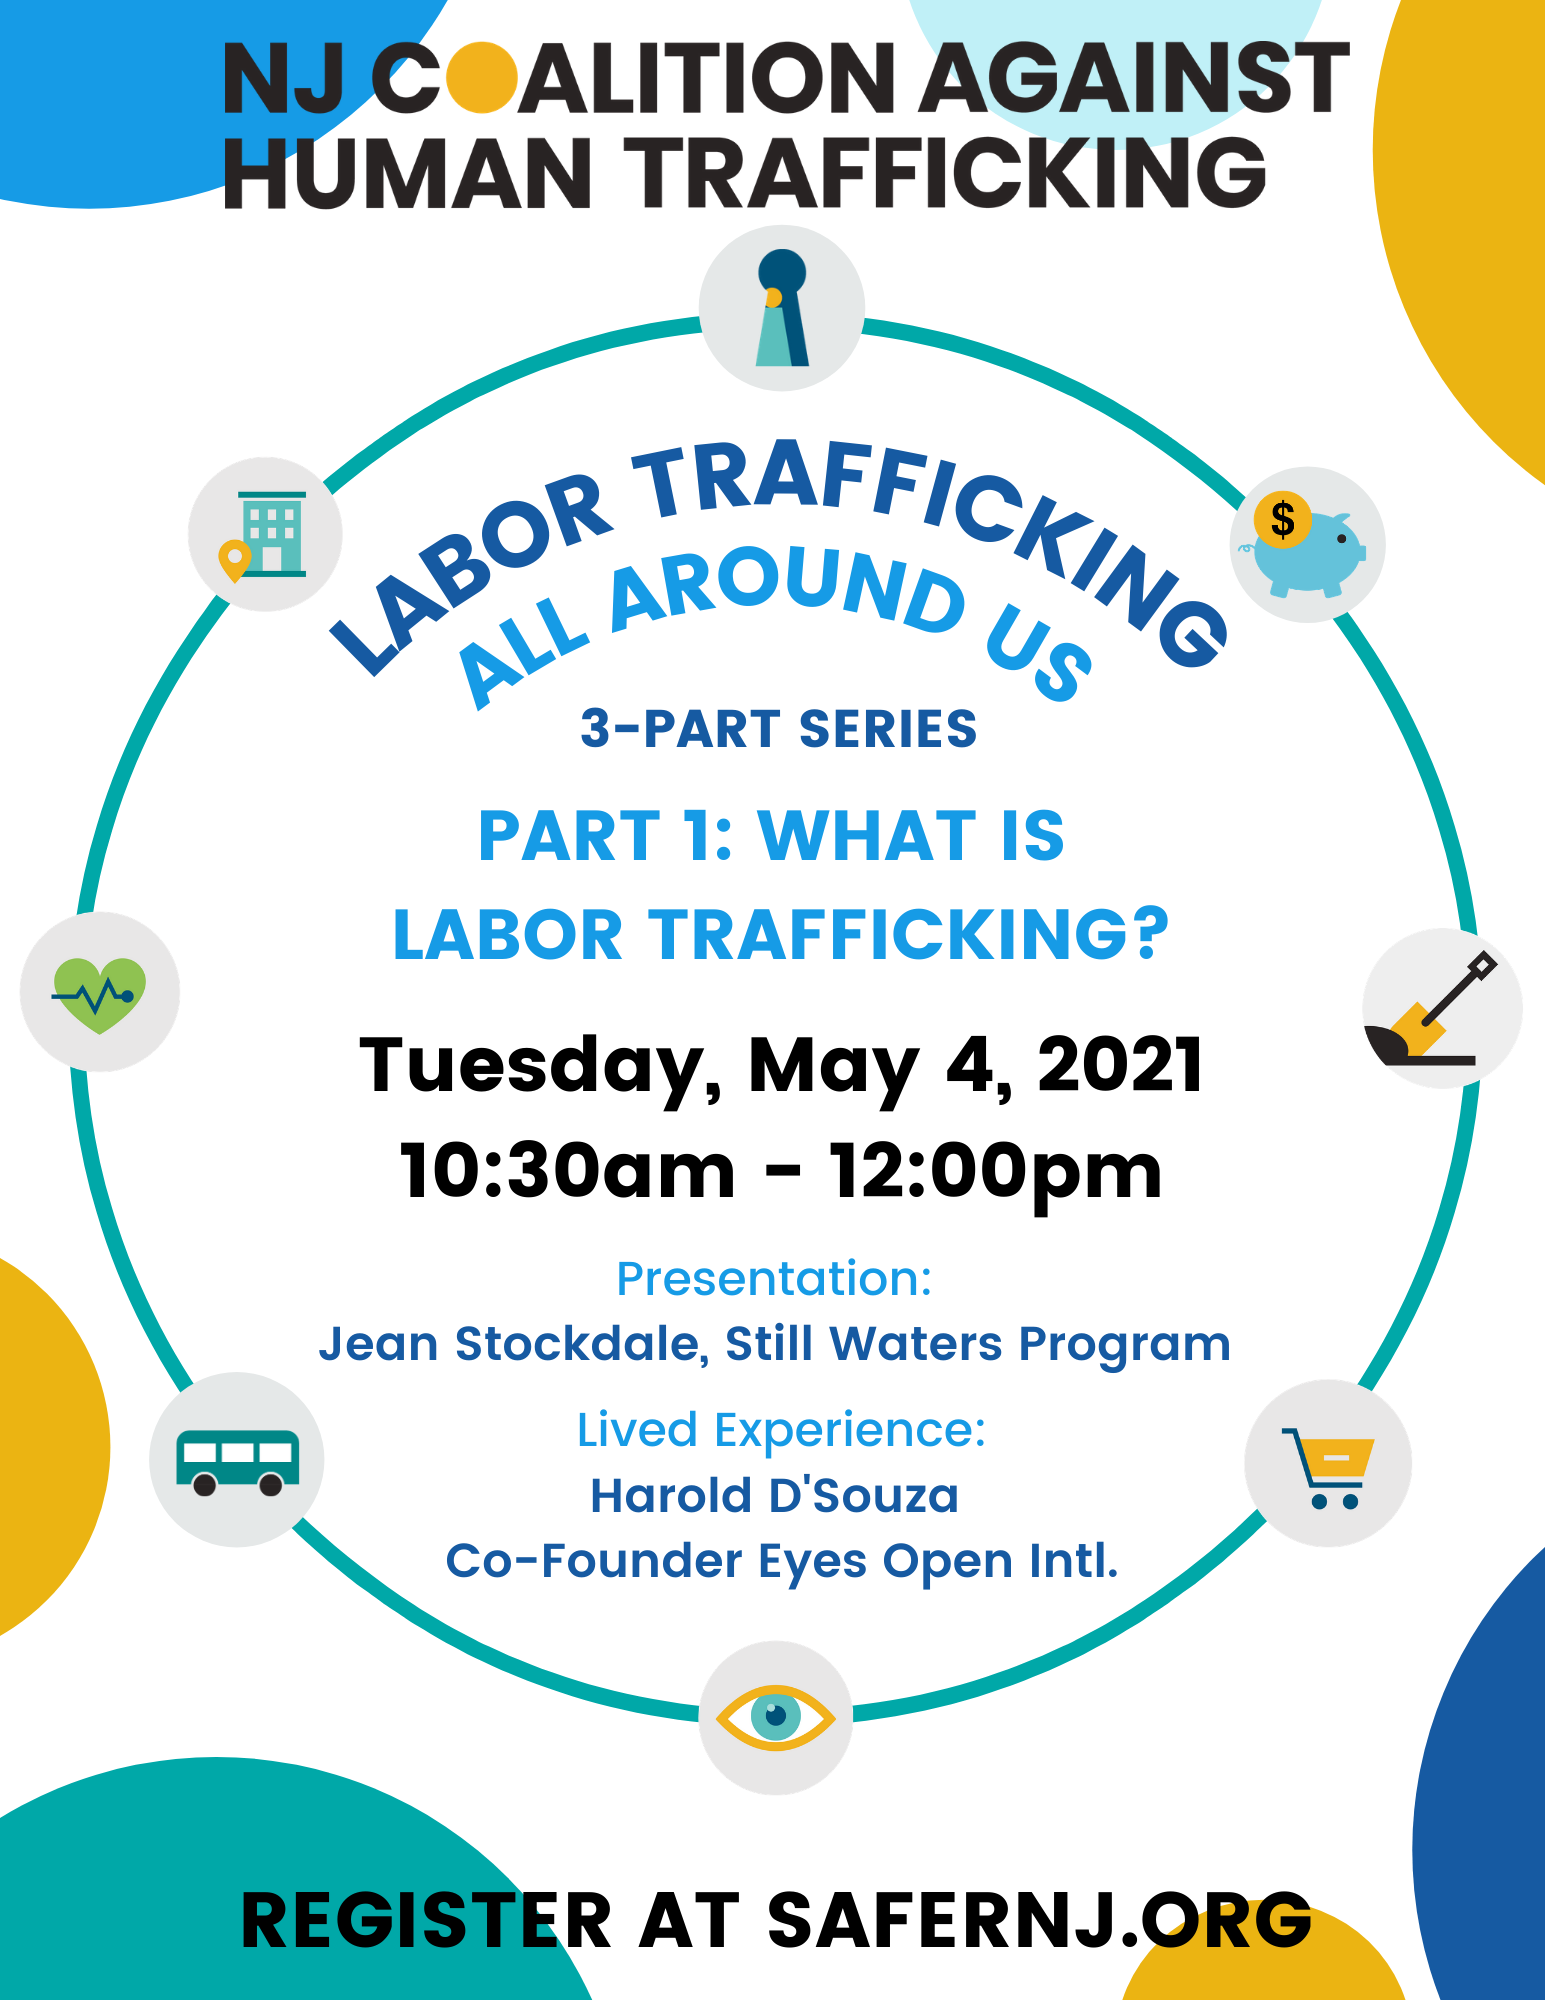 Parts 1 LABOR TRAFFICKING website flyers